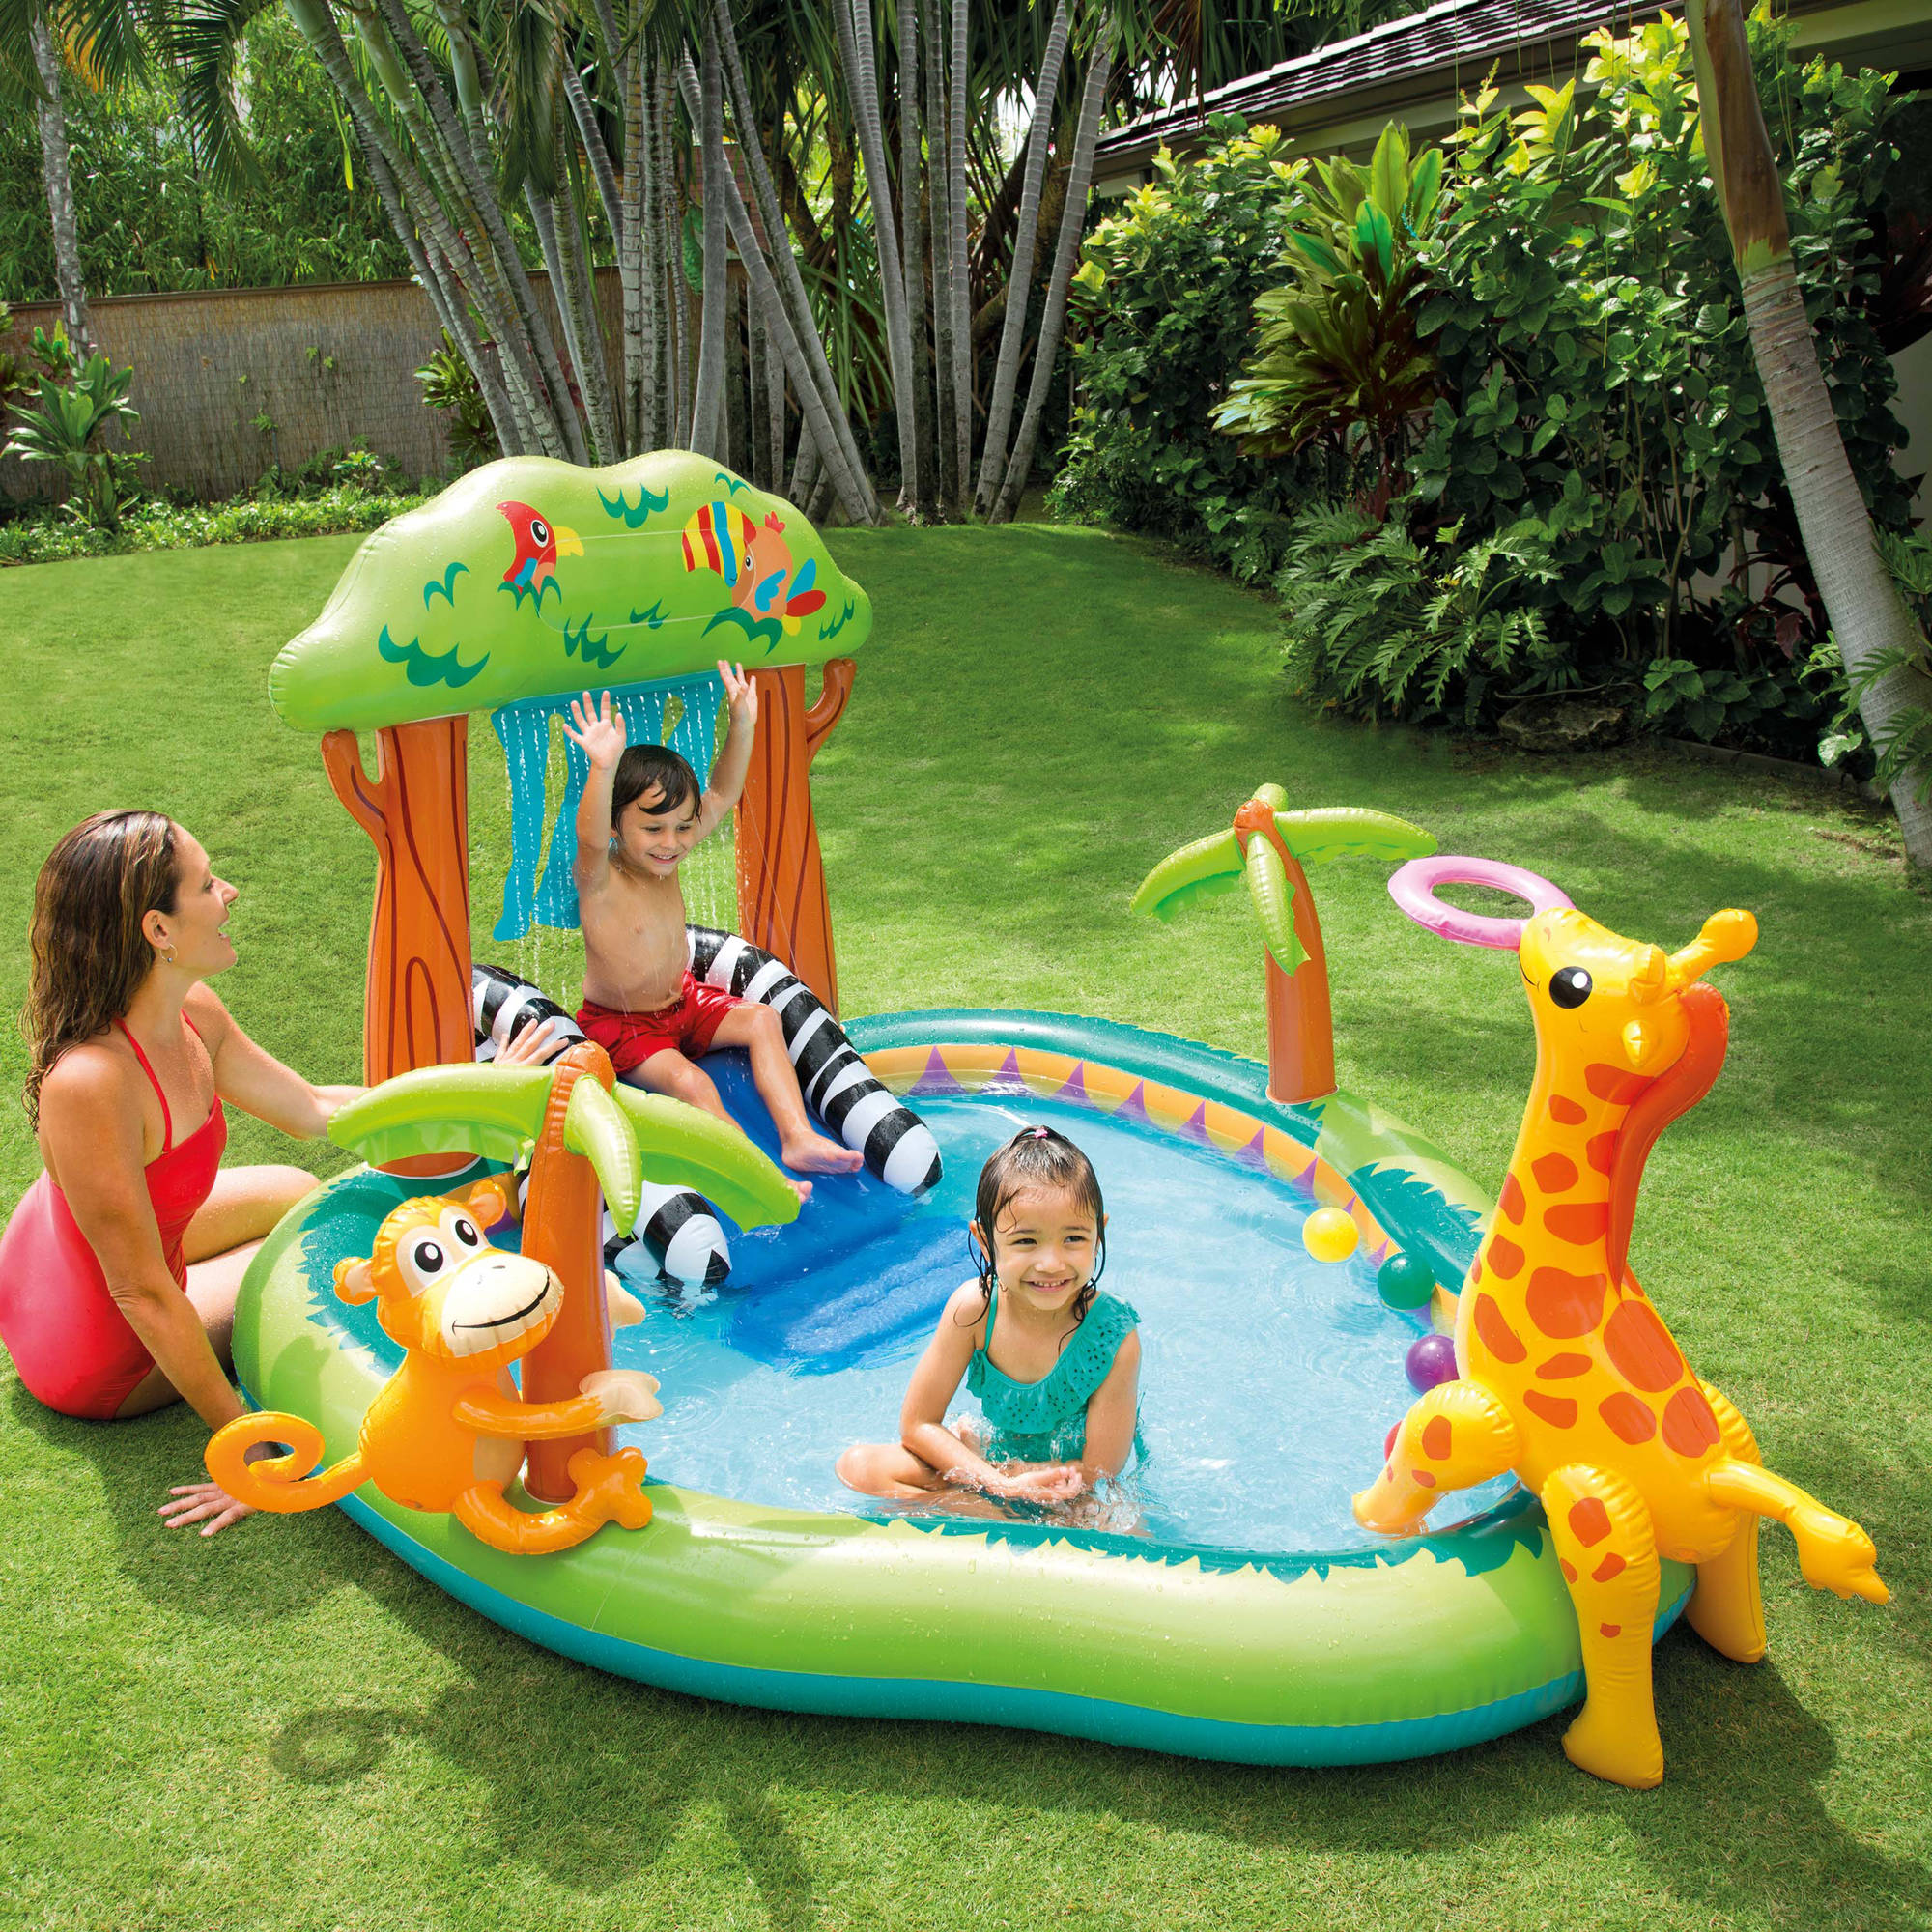 Intex Inflatable Jungle Play Center With Water Slide And Sprayer